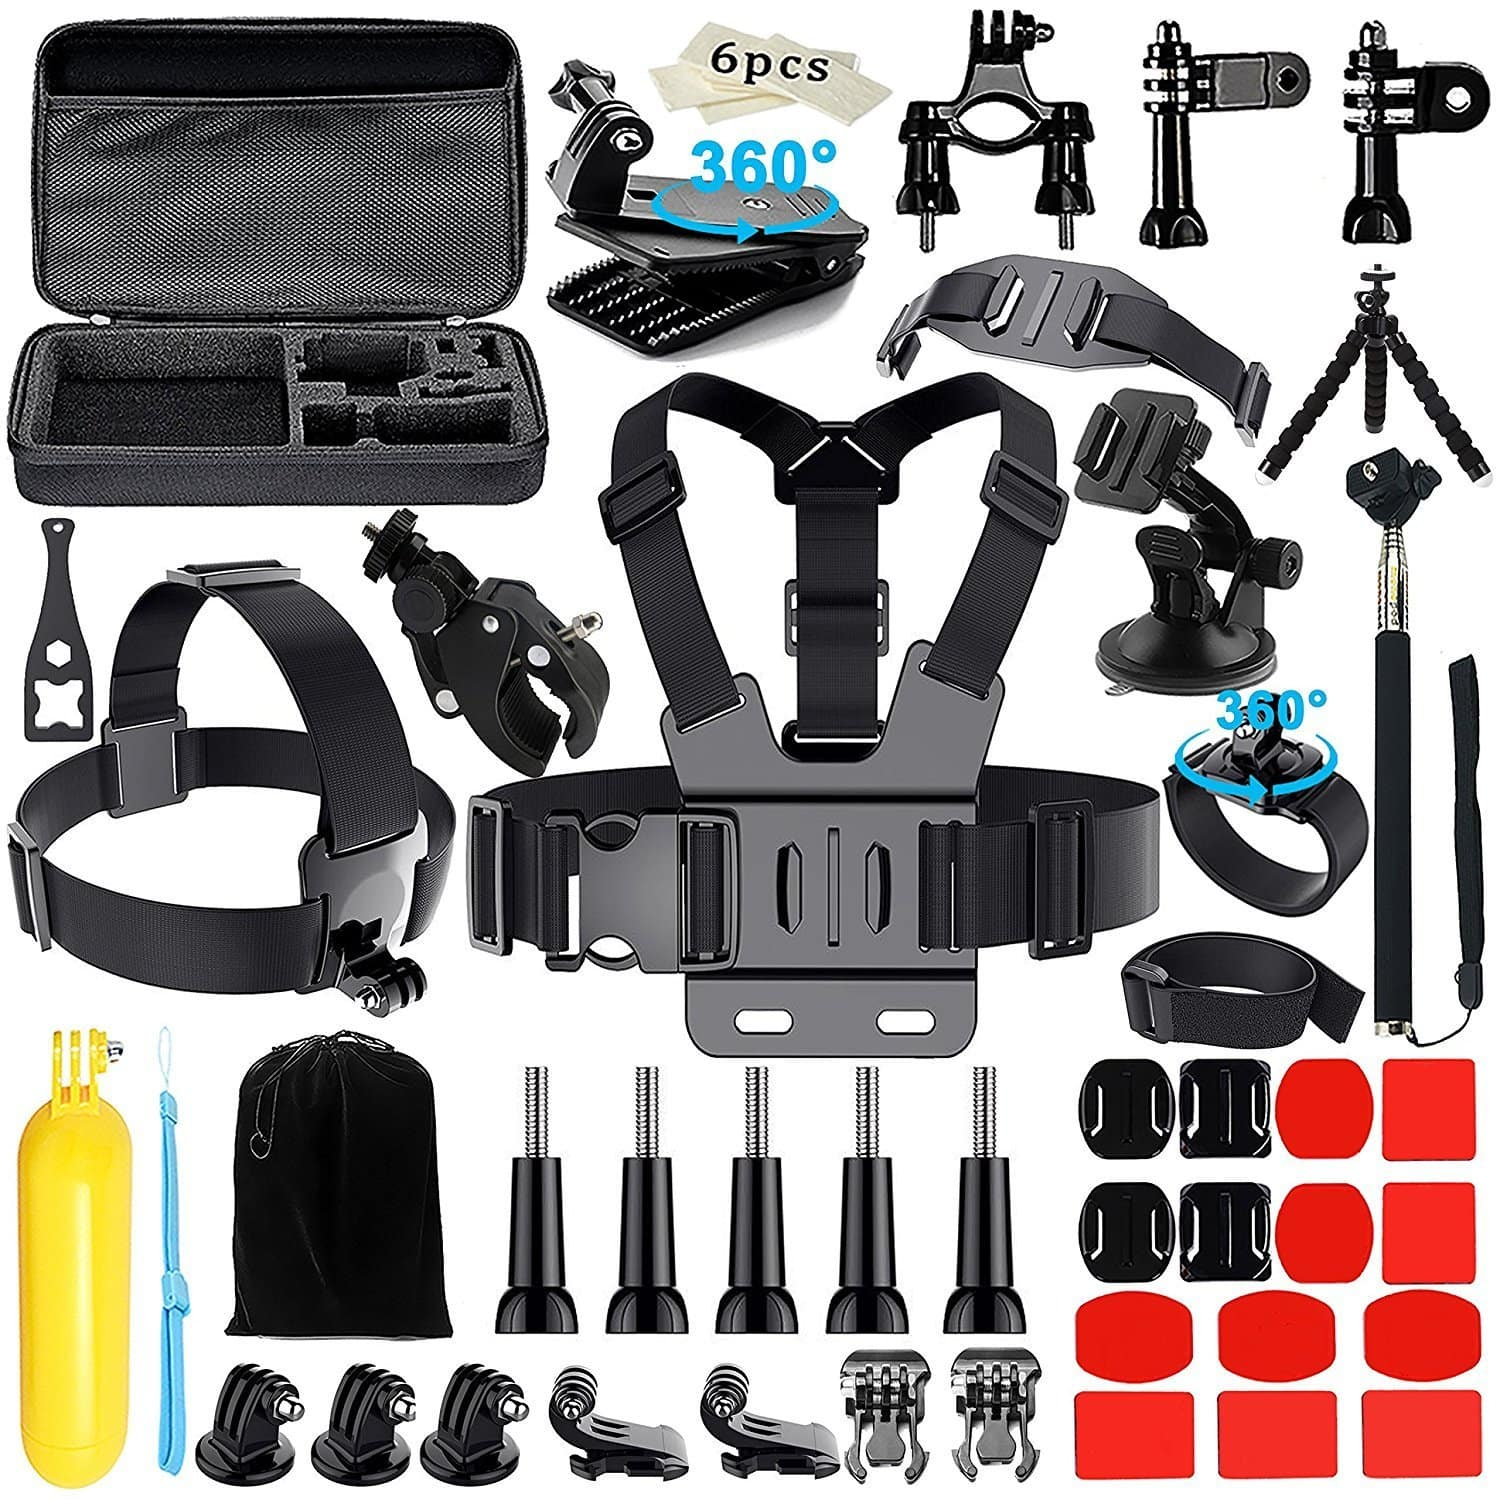 Action Camera Accessories for GoPro Hero 2018 Session/6 5 On Sale for $12.99